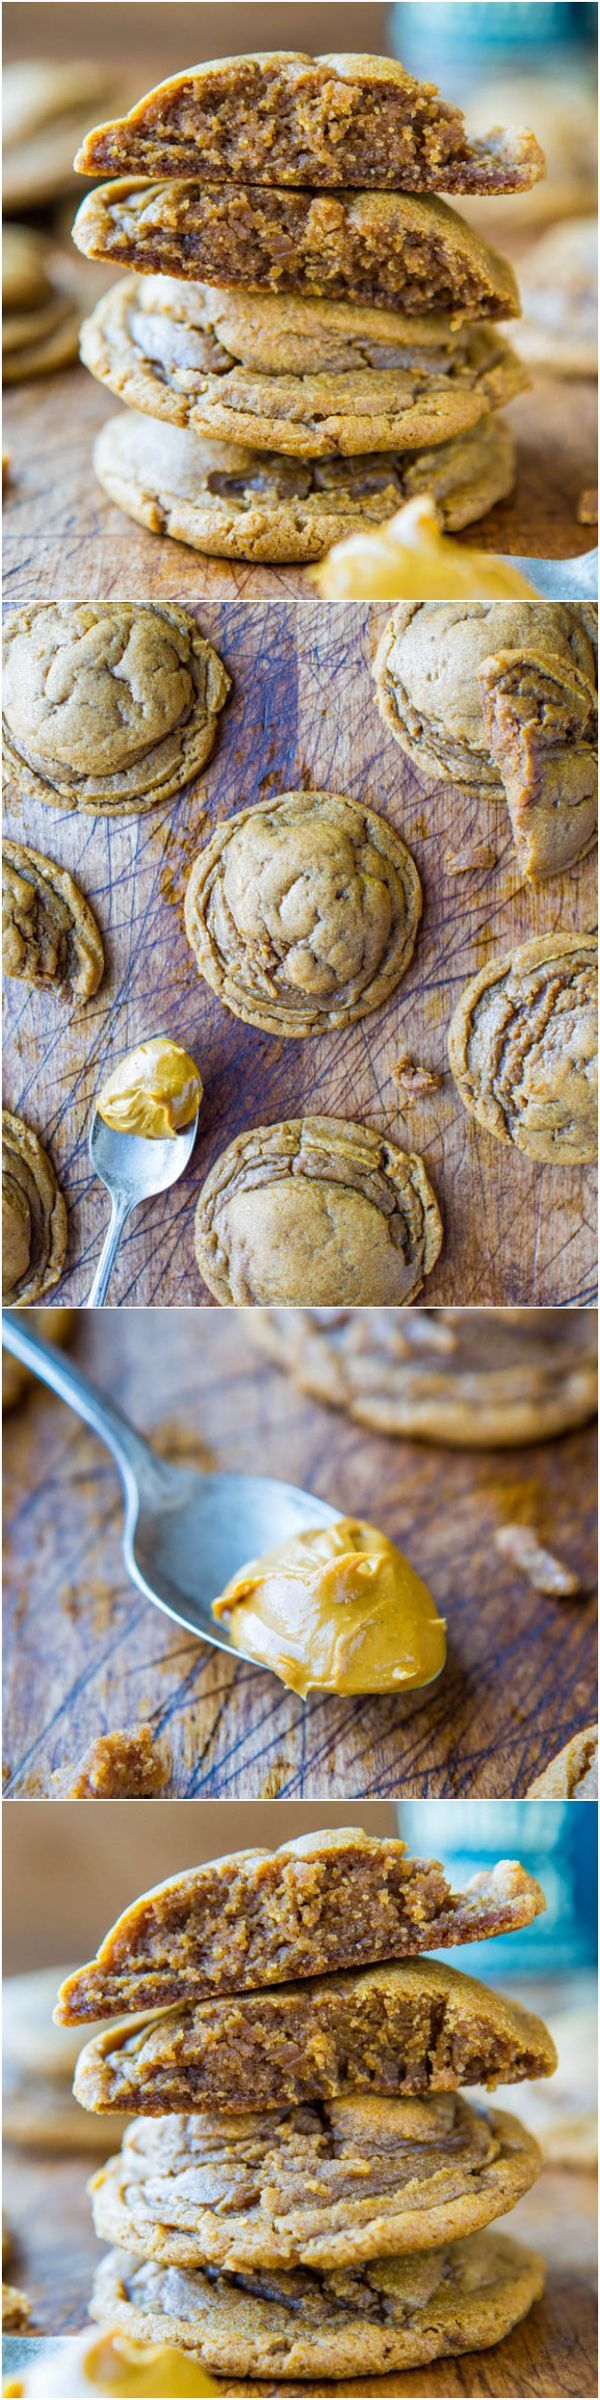 Softbatch Cookie Butter Brown Sugar Cookies - Bake with your Cookie Butter (or Biscoff) rather than just eating it by the spoonful! NO BUTTER used in these super soft cookies!